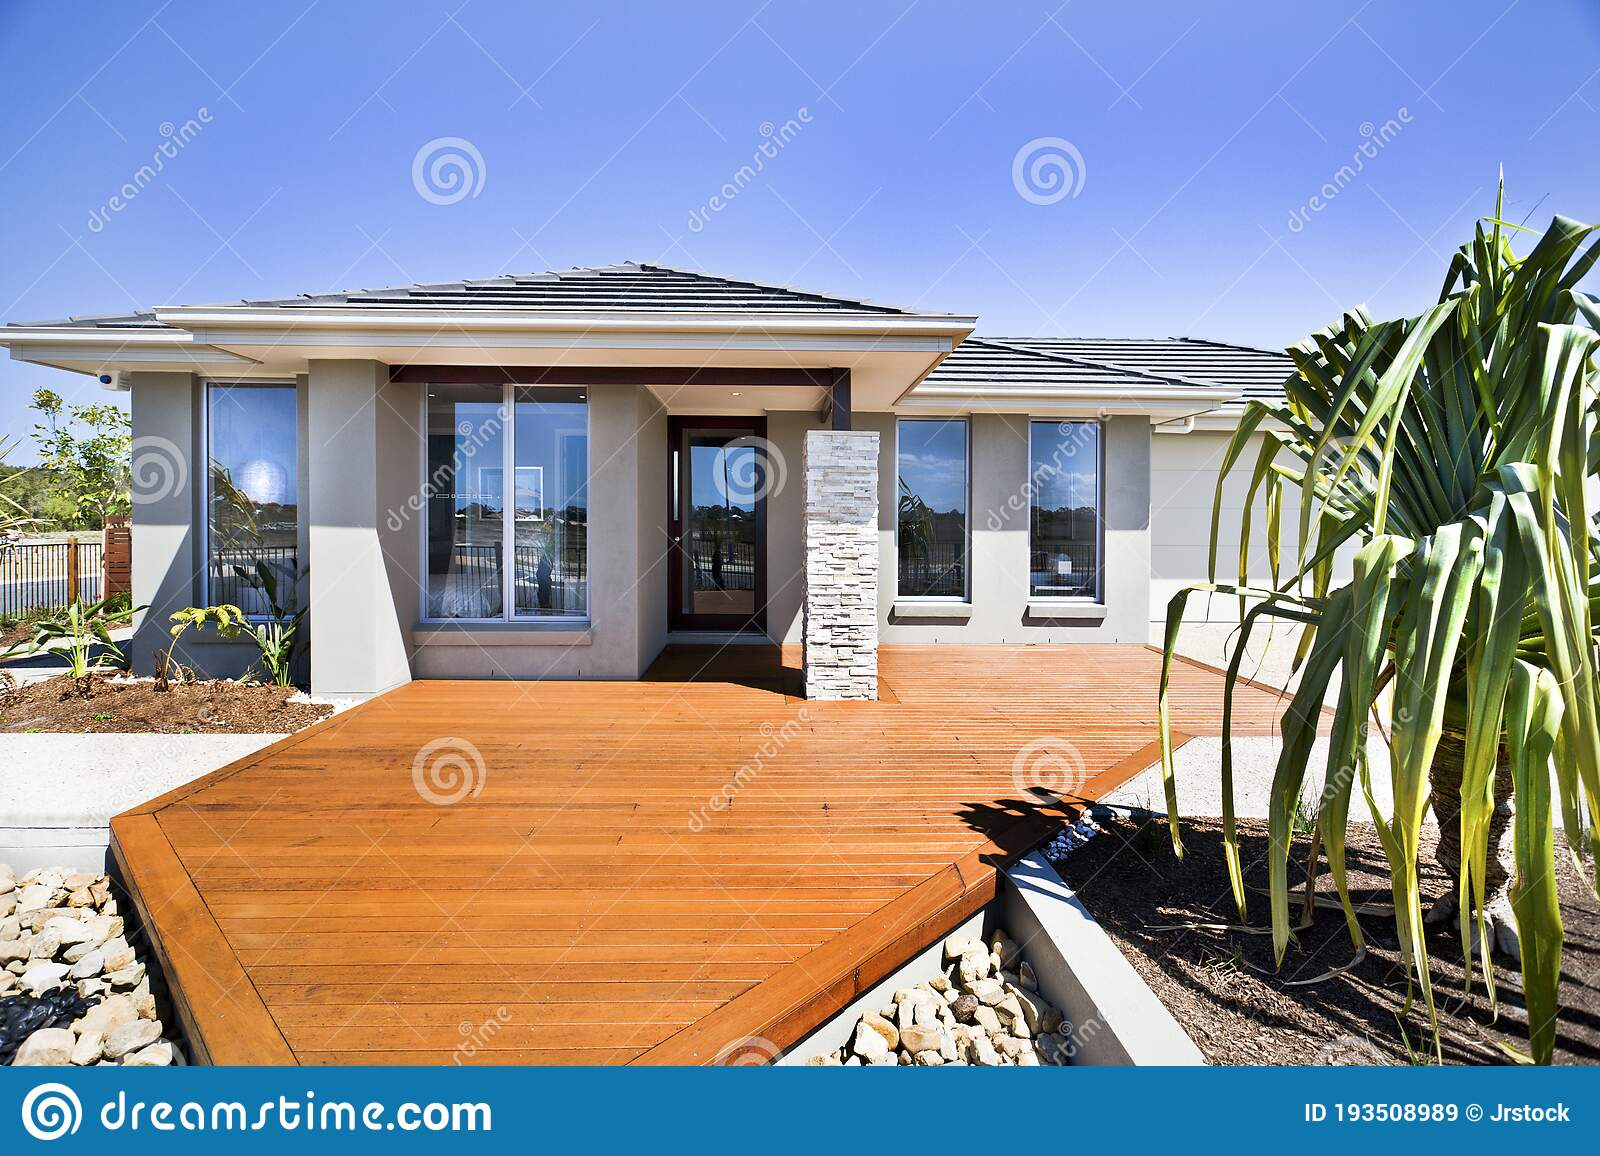 Front View Of Modern And Luxury House Exterior Stock Image Image Of Home Concrete 193508989